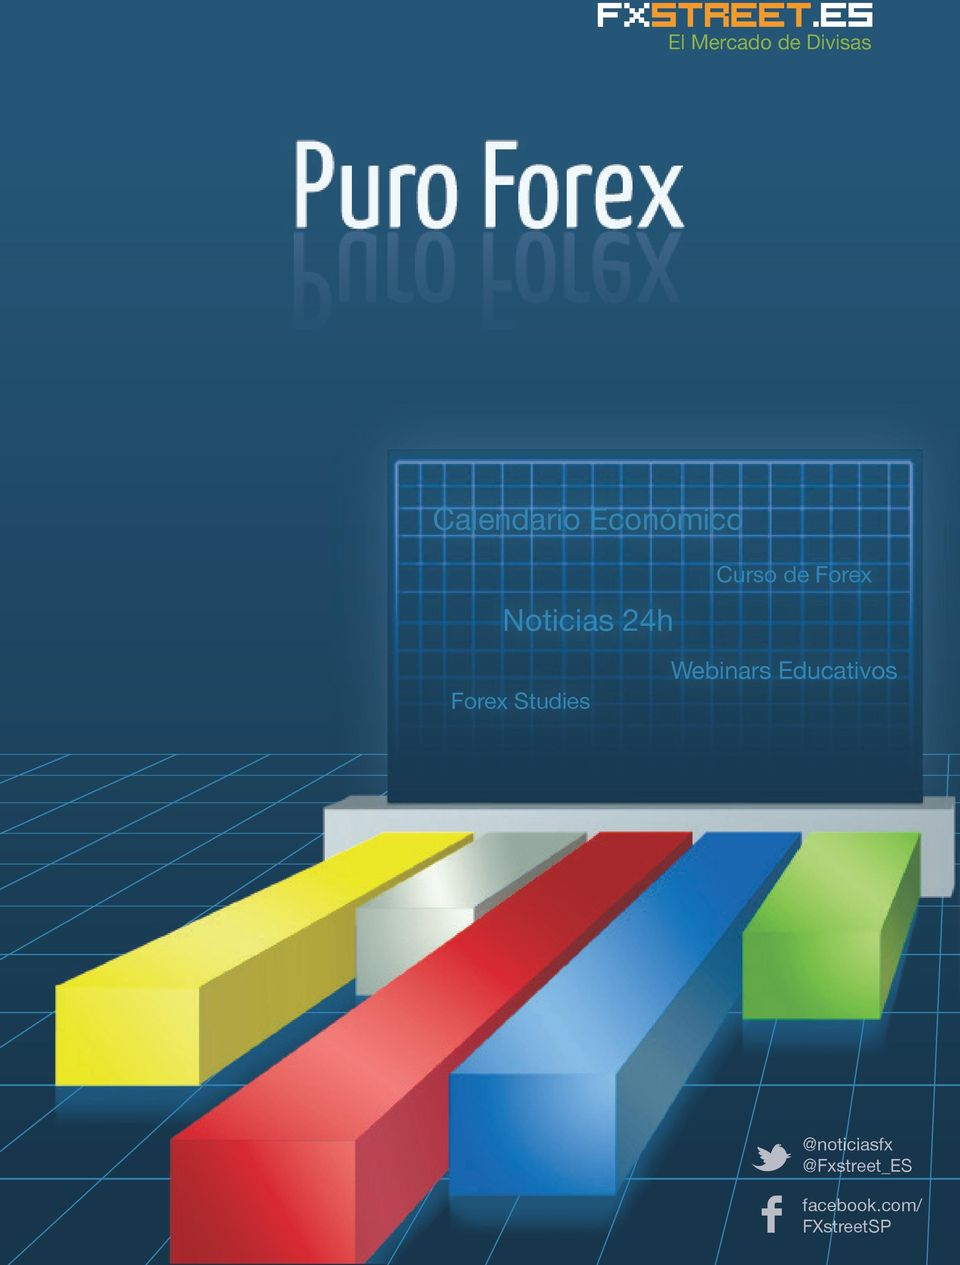 Forex Studies Webinars Educativos